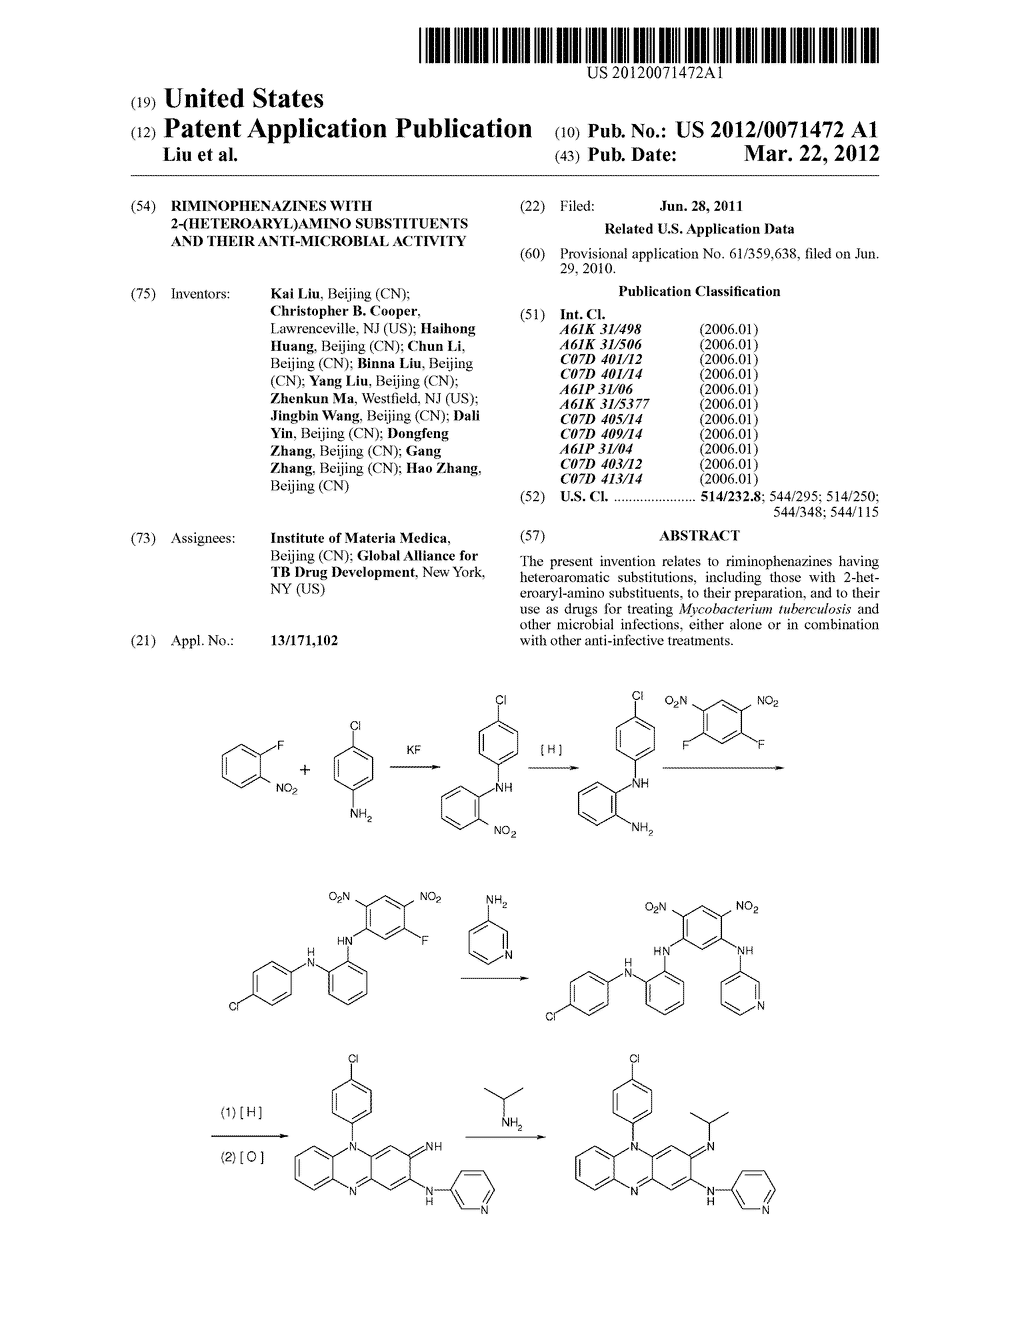 RIMINOPHENAZINES WITH 2-(HETEROARYL)AMINO SUBSTITUENTS AND THEIR     ANTI-MICROBIAL ACTIVITY - diagram, schematic, and image 01